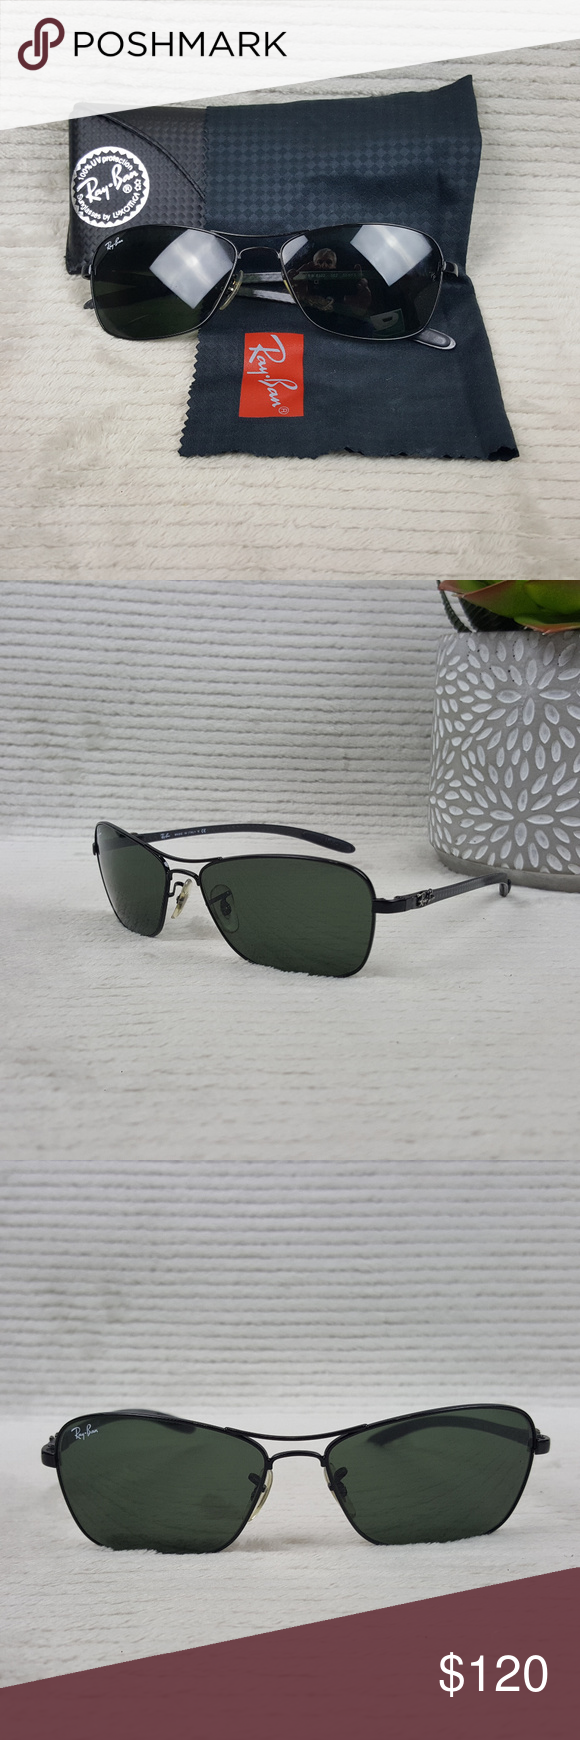 8532ccd4df ... shopping ray ban rb8302 carbon fiber frame w case ray ban tech  sunglasses with 5fc92 b9738